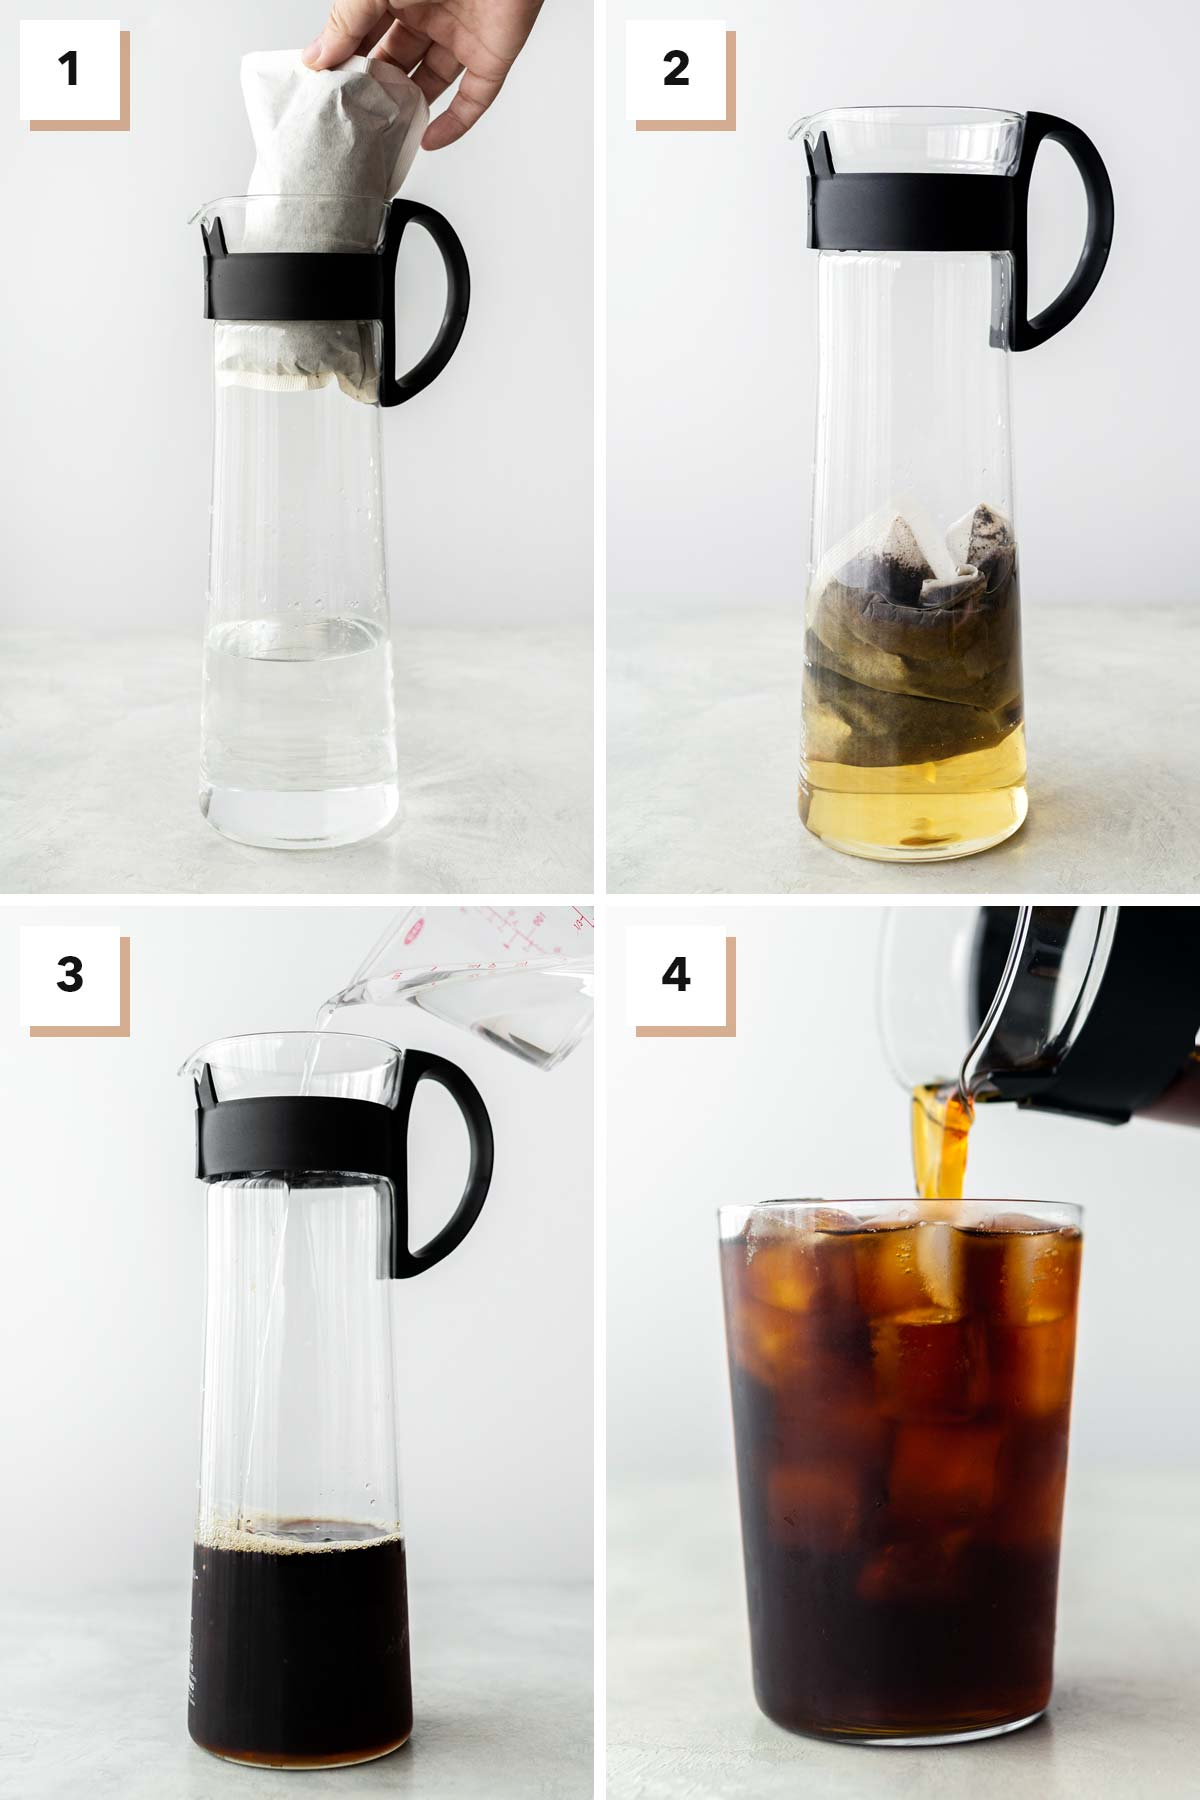 Four photo collage showing steps to make Starbucks cold brew coffee.